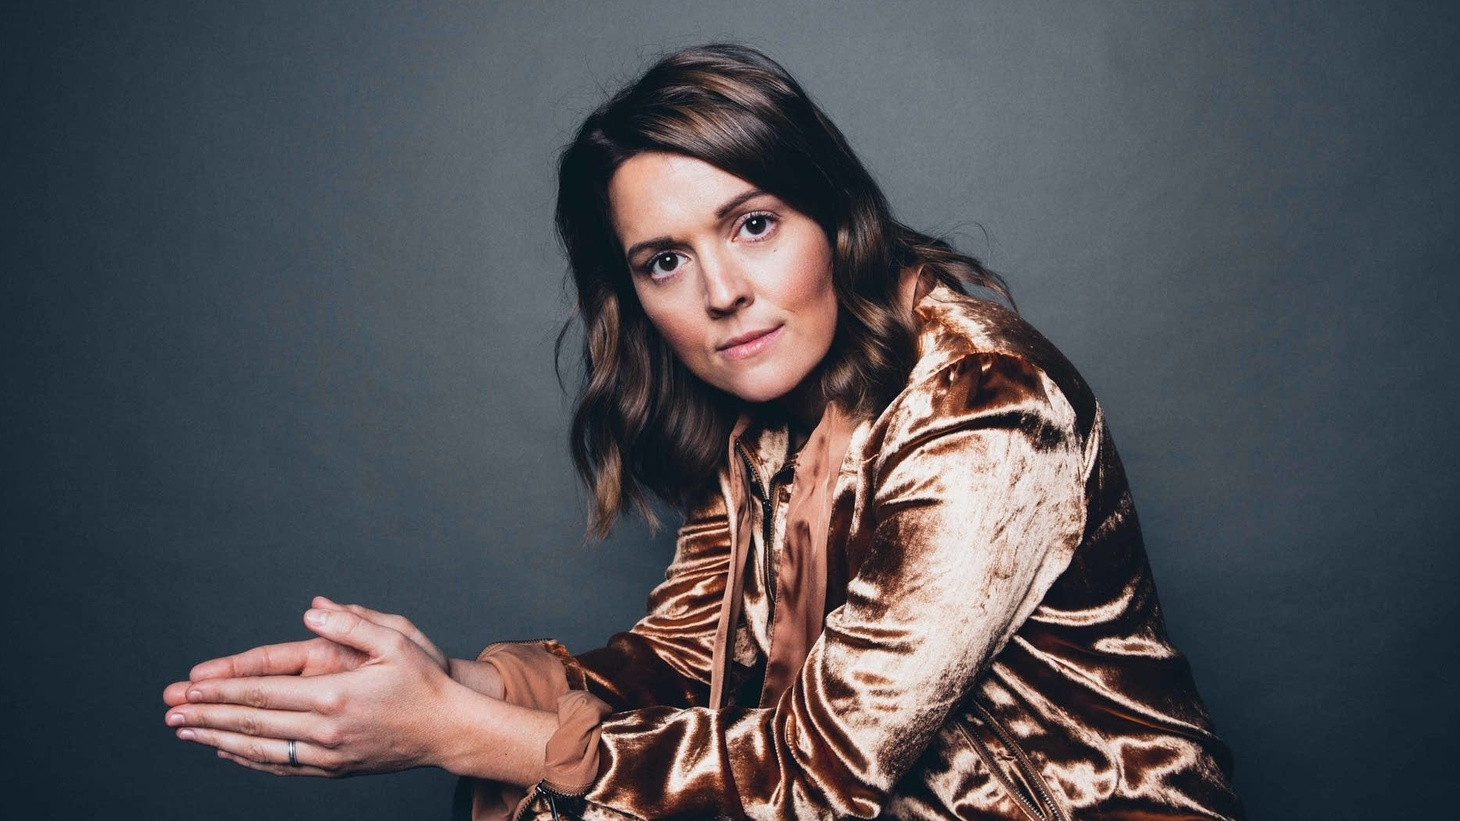 We kick off 2018's live performance calendar with one of our favorite singer-songwriters – Brandi Carlile. She's here to play new songs in advance of the February release date for her album By The Way, I Forgive You.